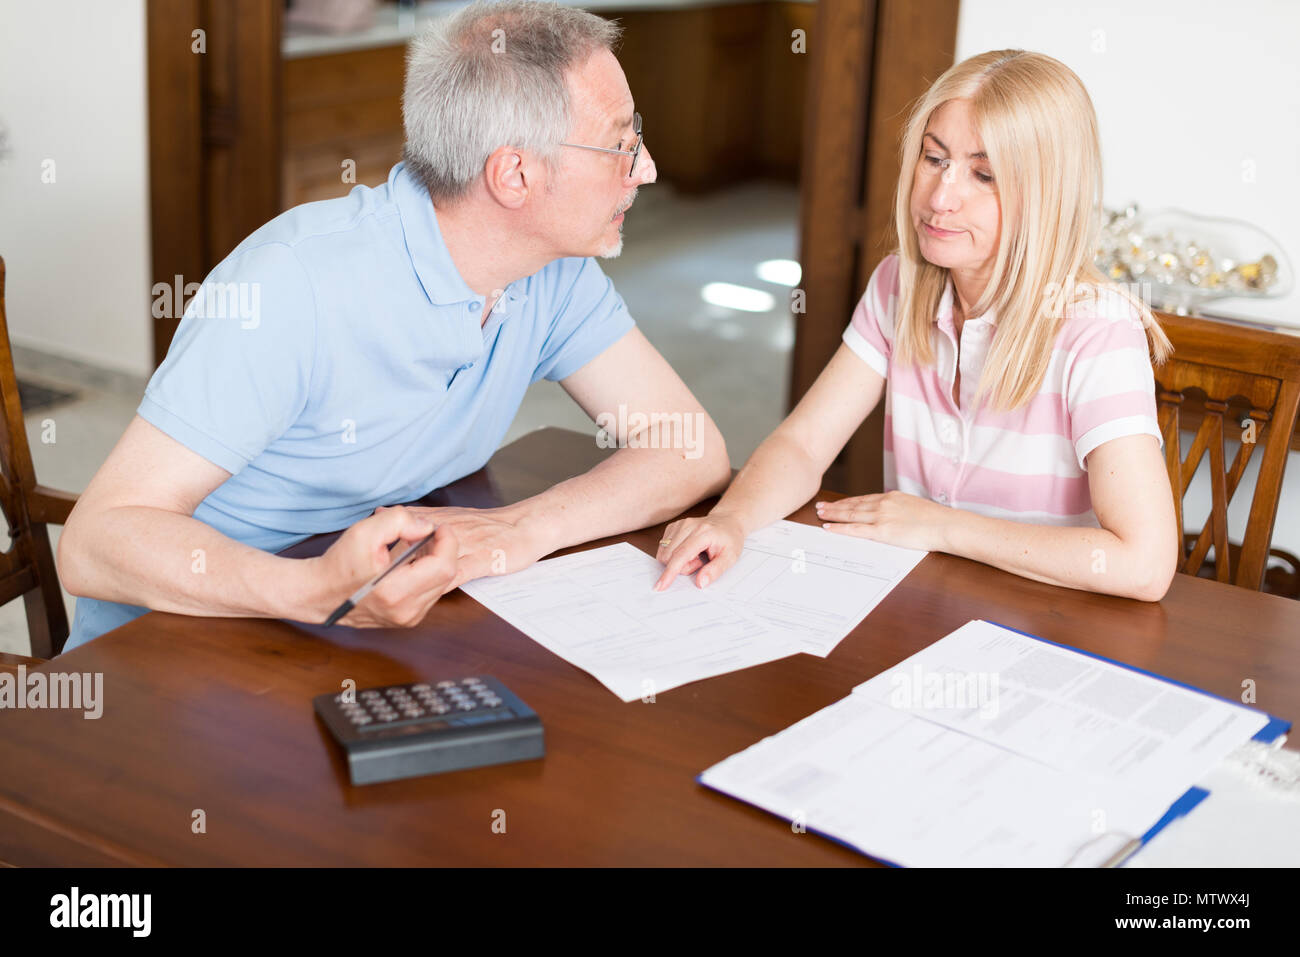 Couple calculating their expenses together - Stock Image